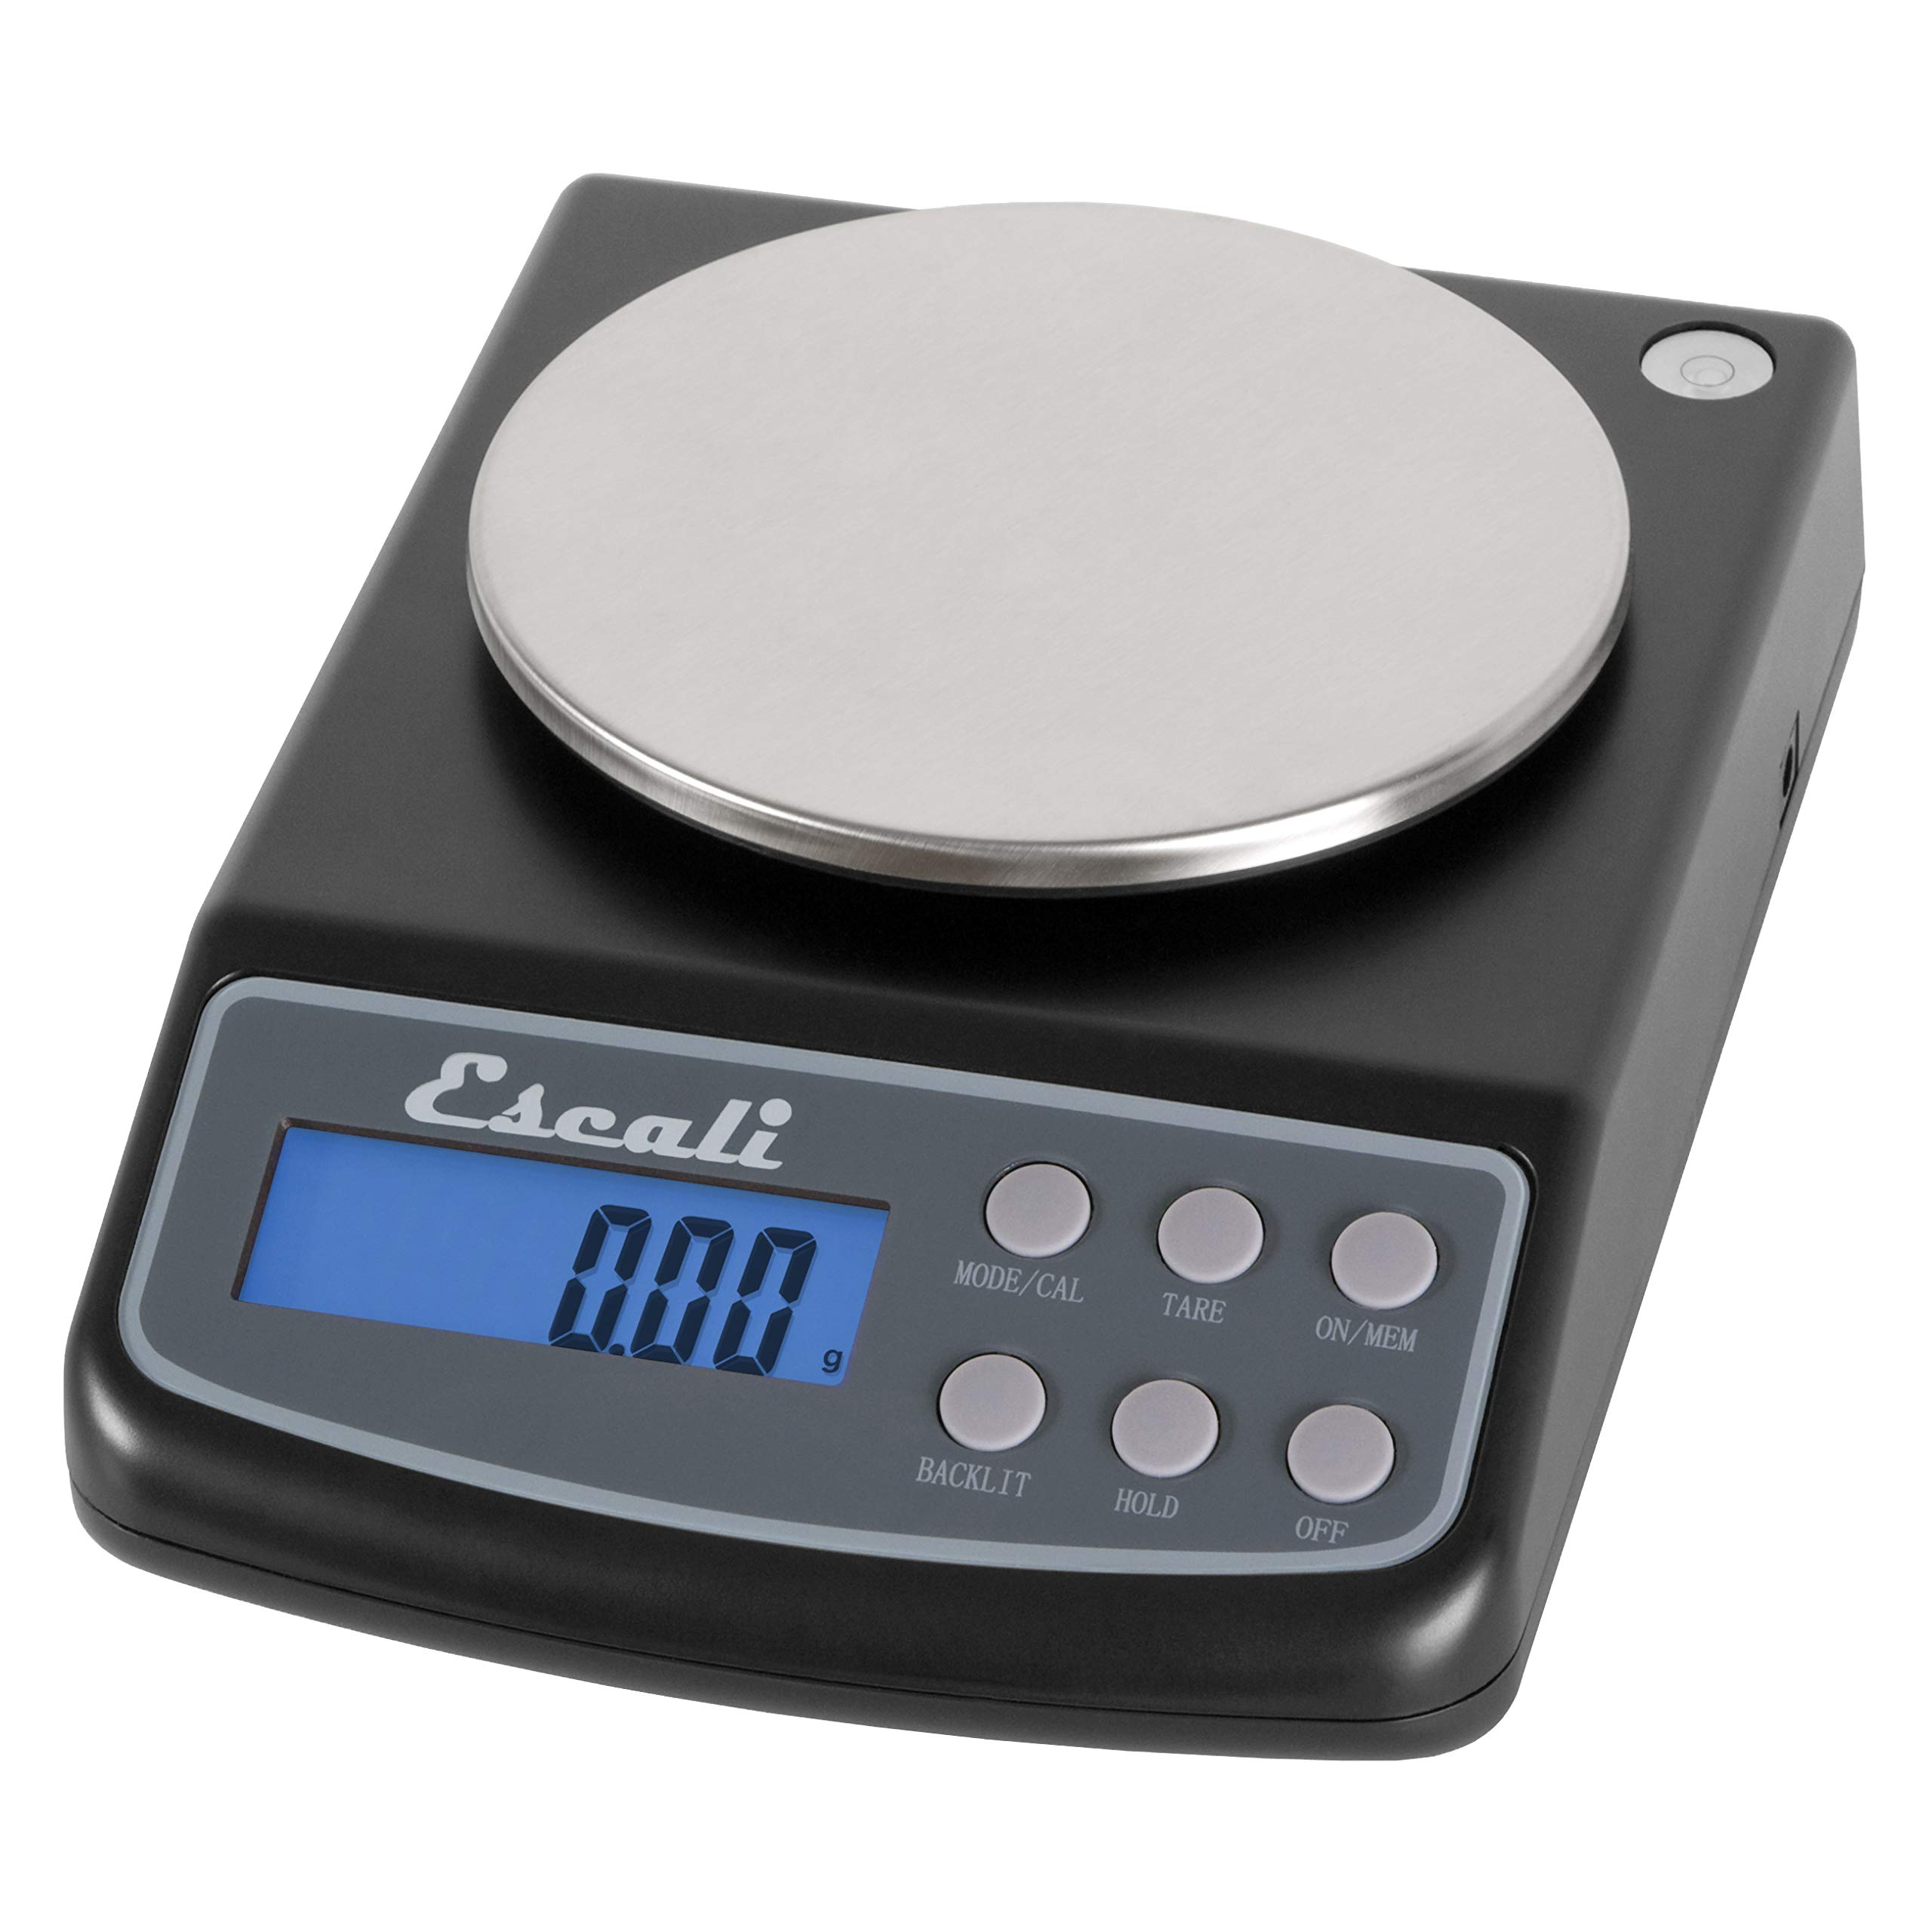 Escali L125 L-Series High Precision Professional Lab Scale, Six Units of Measurements, Capacity 125 gram / Resolution 0.01 gram, Tare Feature, LCD Digital Display,  Black by Escali